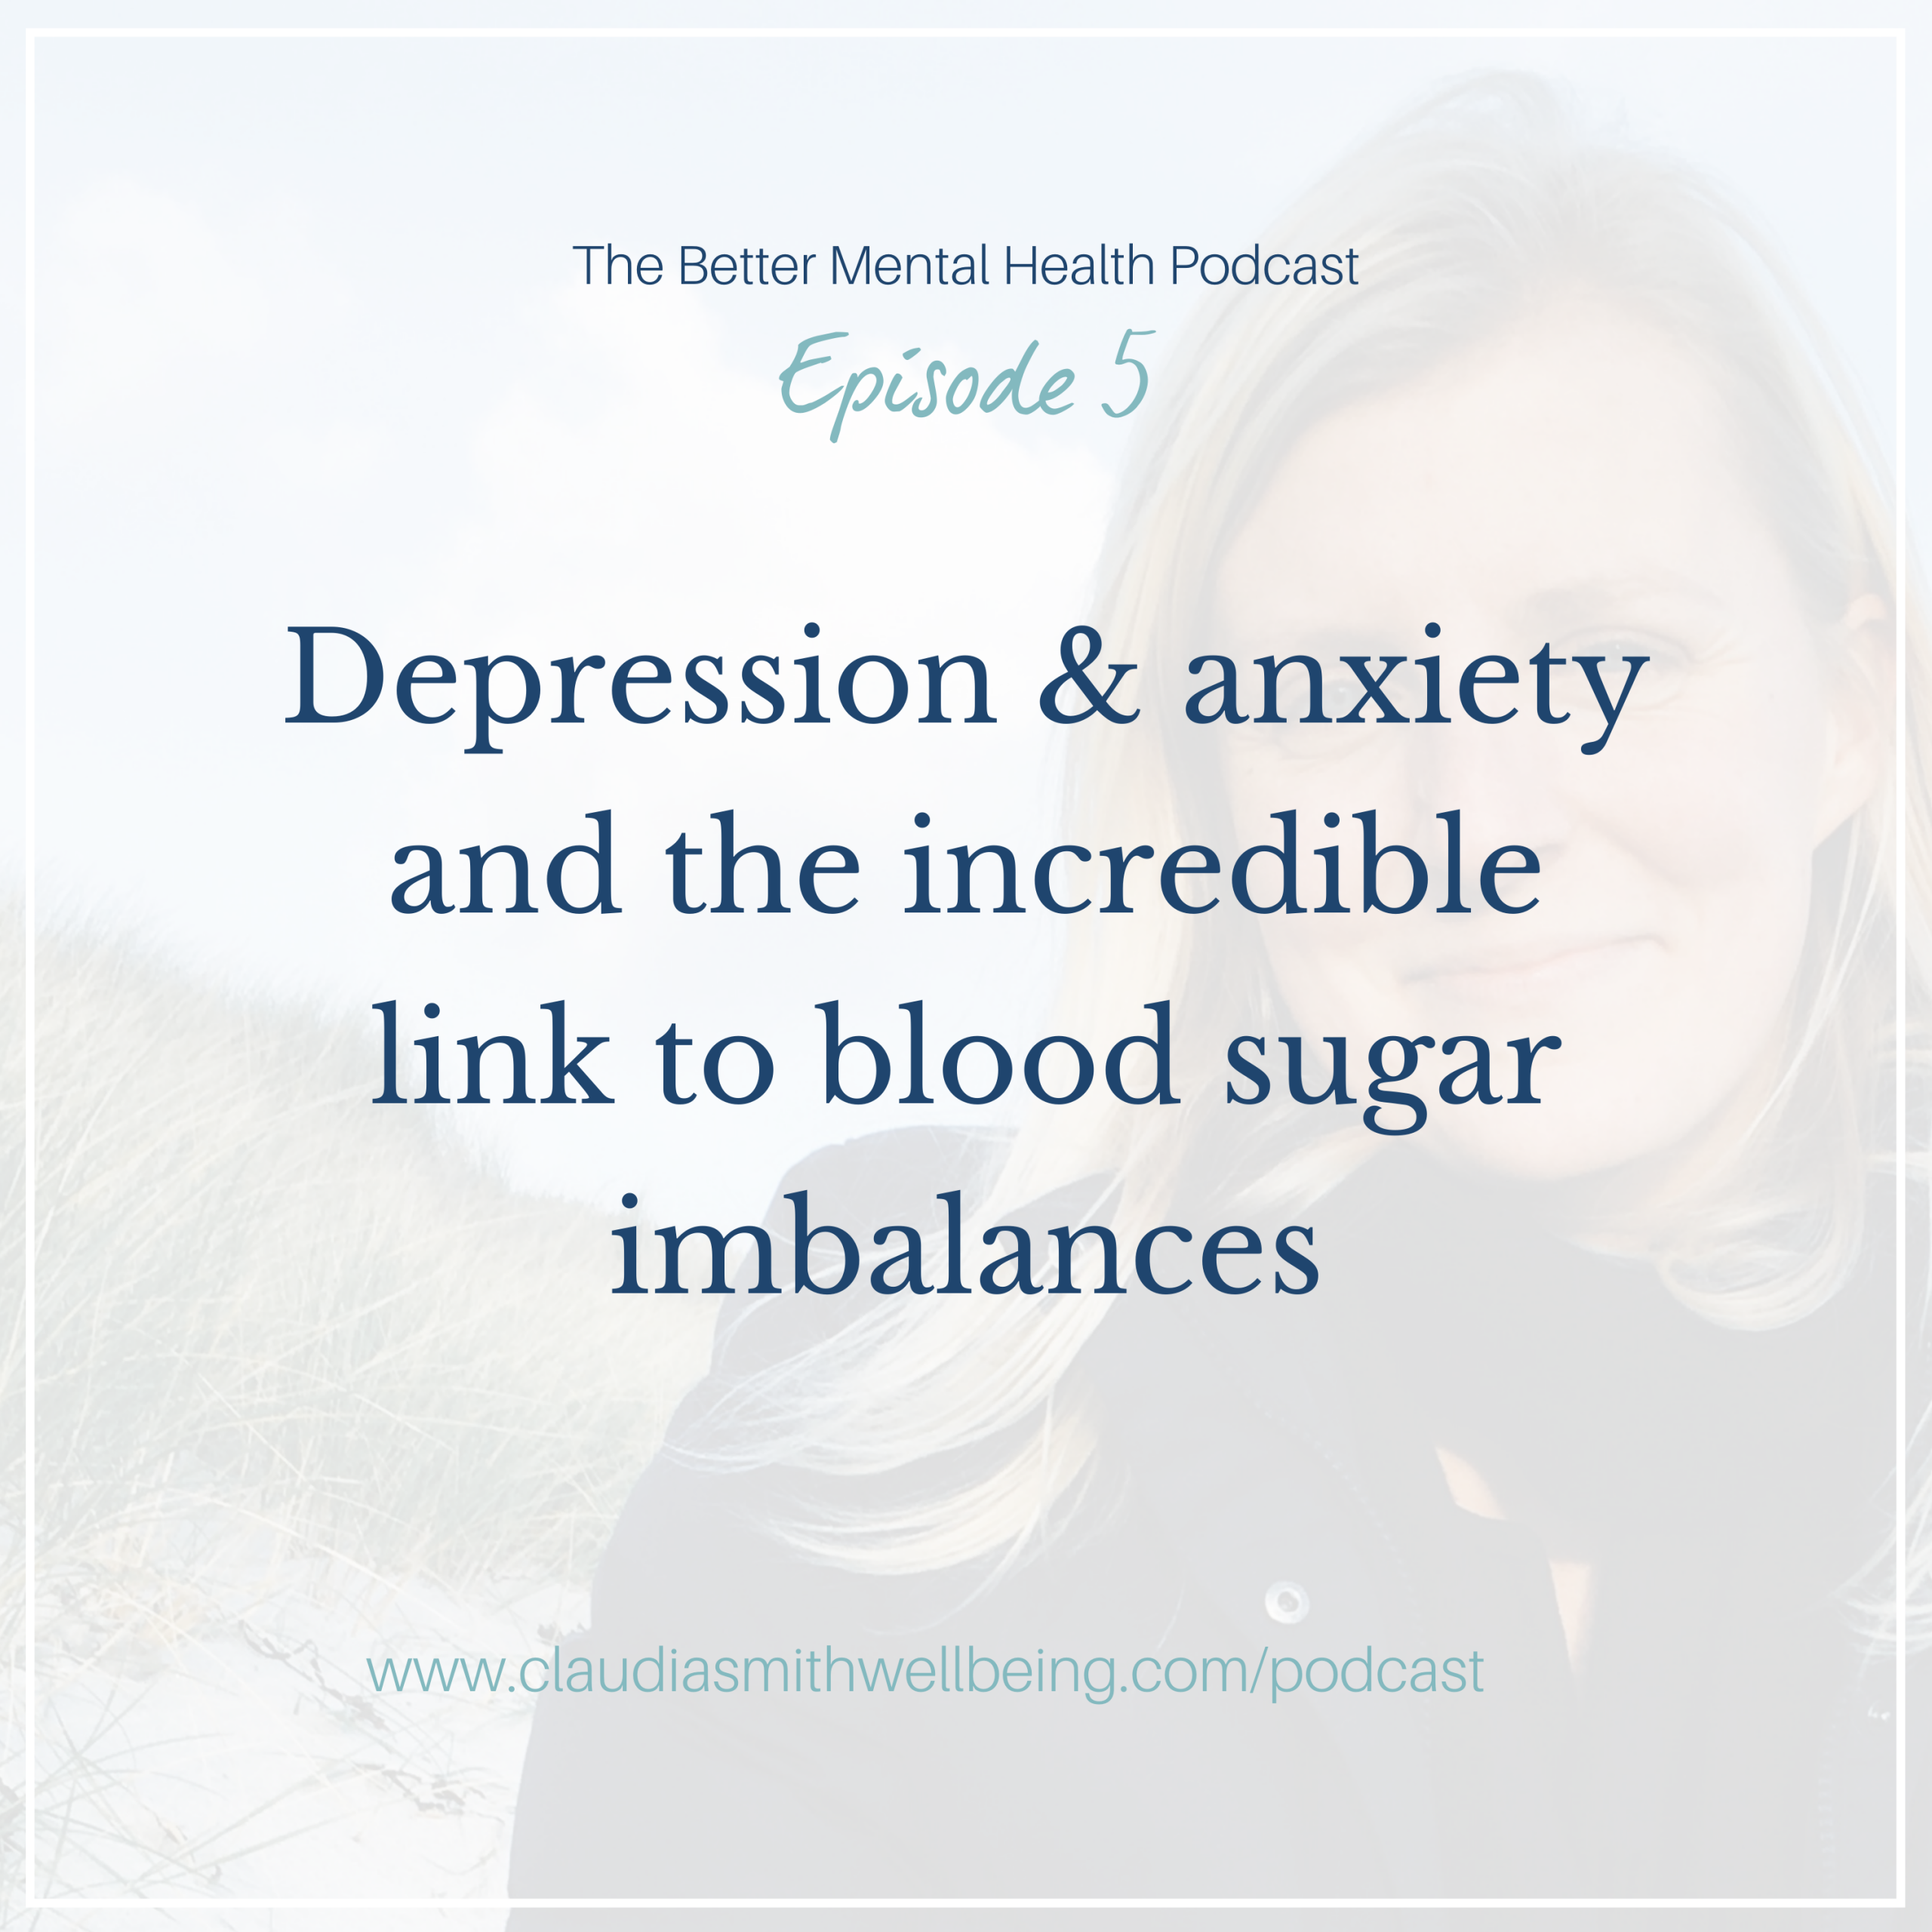 Ep. 5: Depression, anxiety & the incredible link to blood sugar imbalances